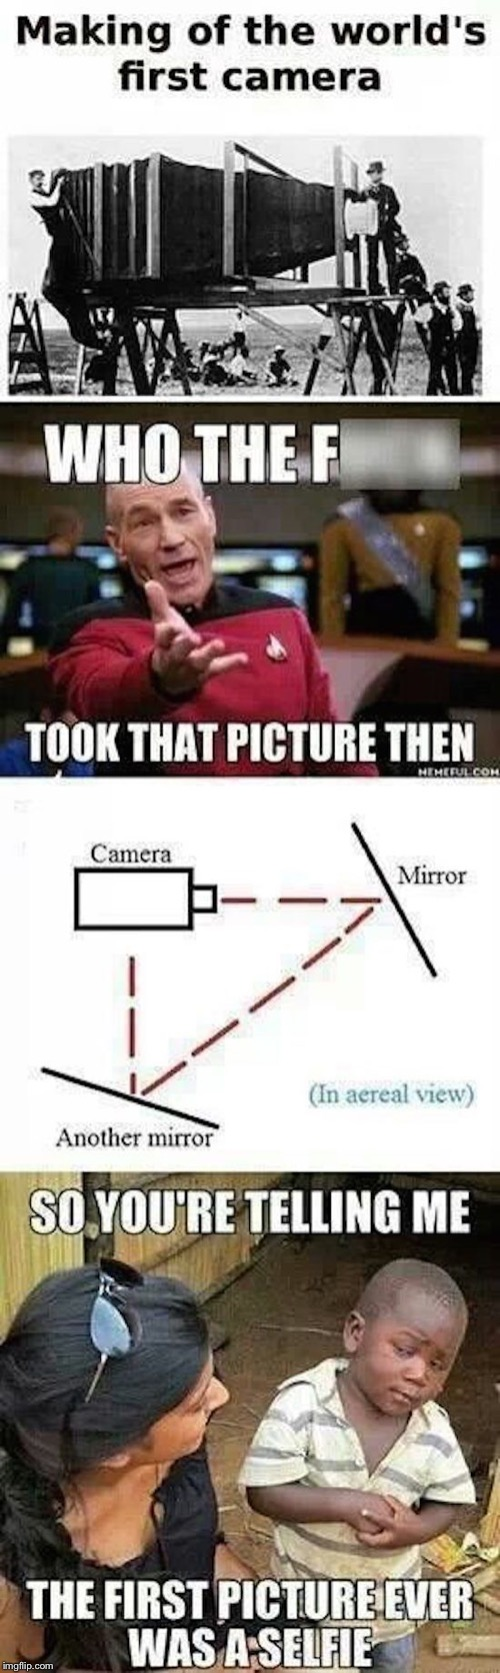 The first selfie...? |  . | image tagged in memes,picard wtf,third world skeptical kid,history,selfie | made w/ Imgflip meme maker